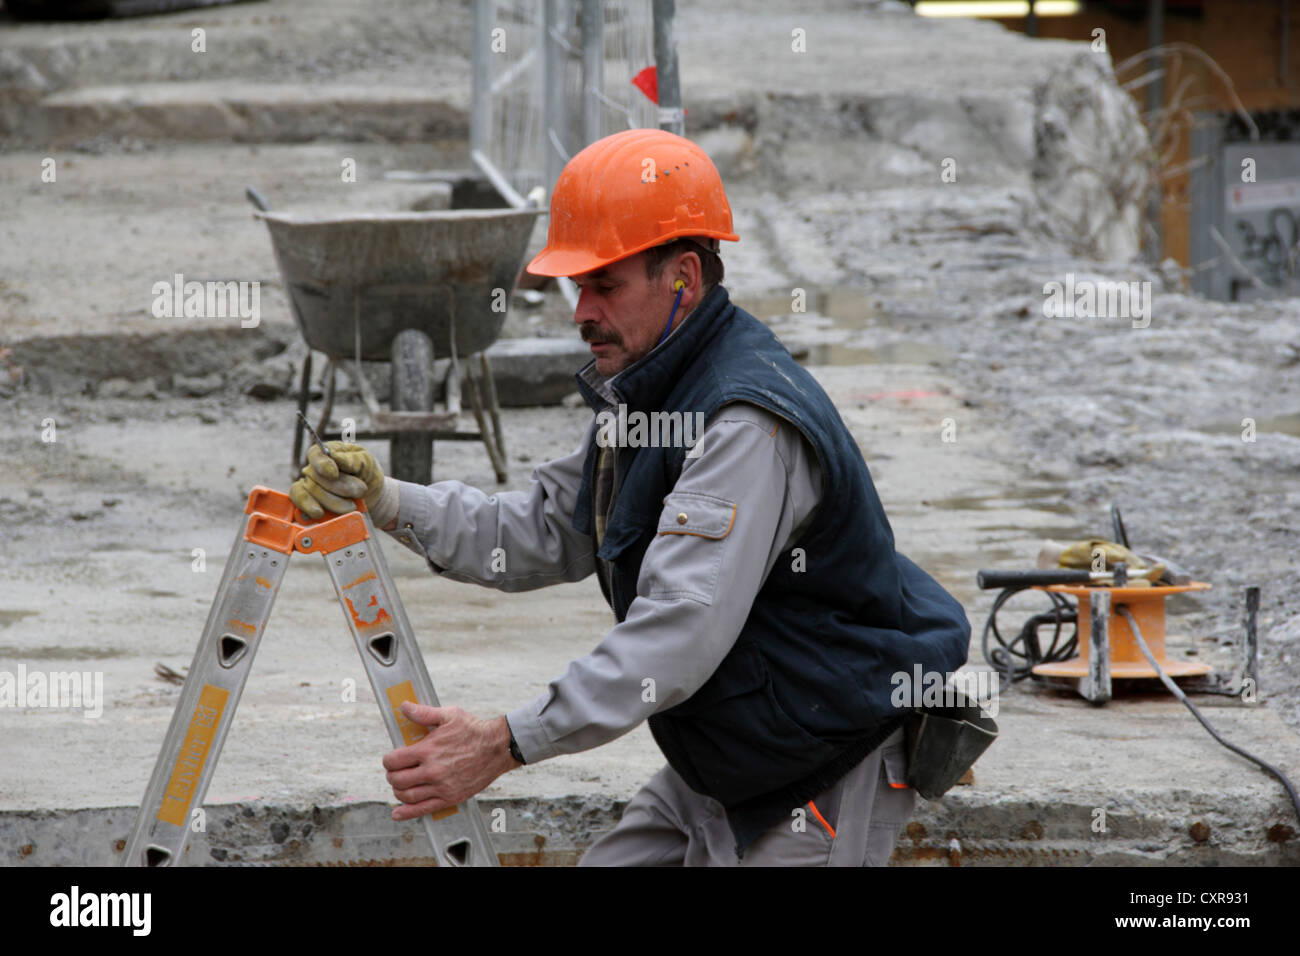 Construction worker climbing onto a concrete slab to work there - Stock Image